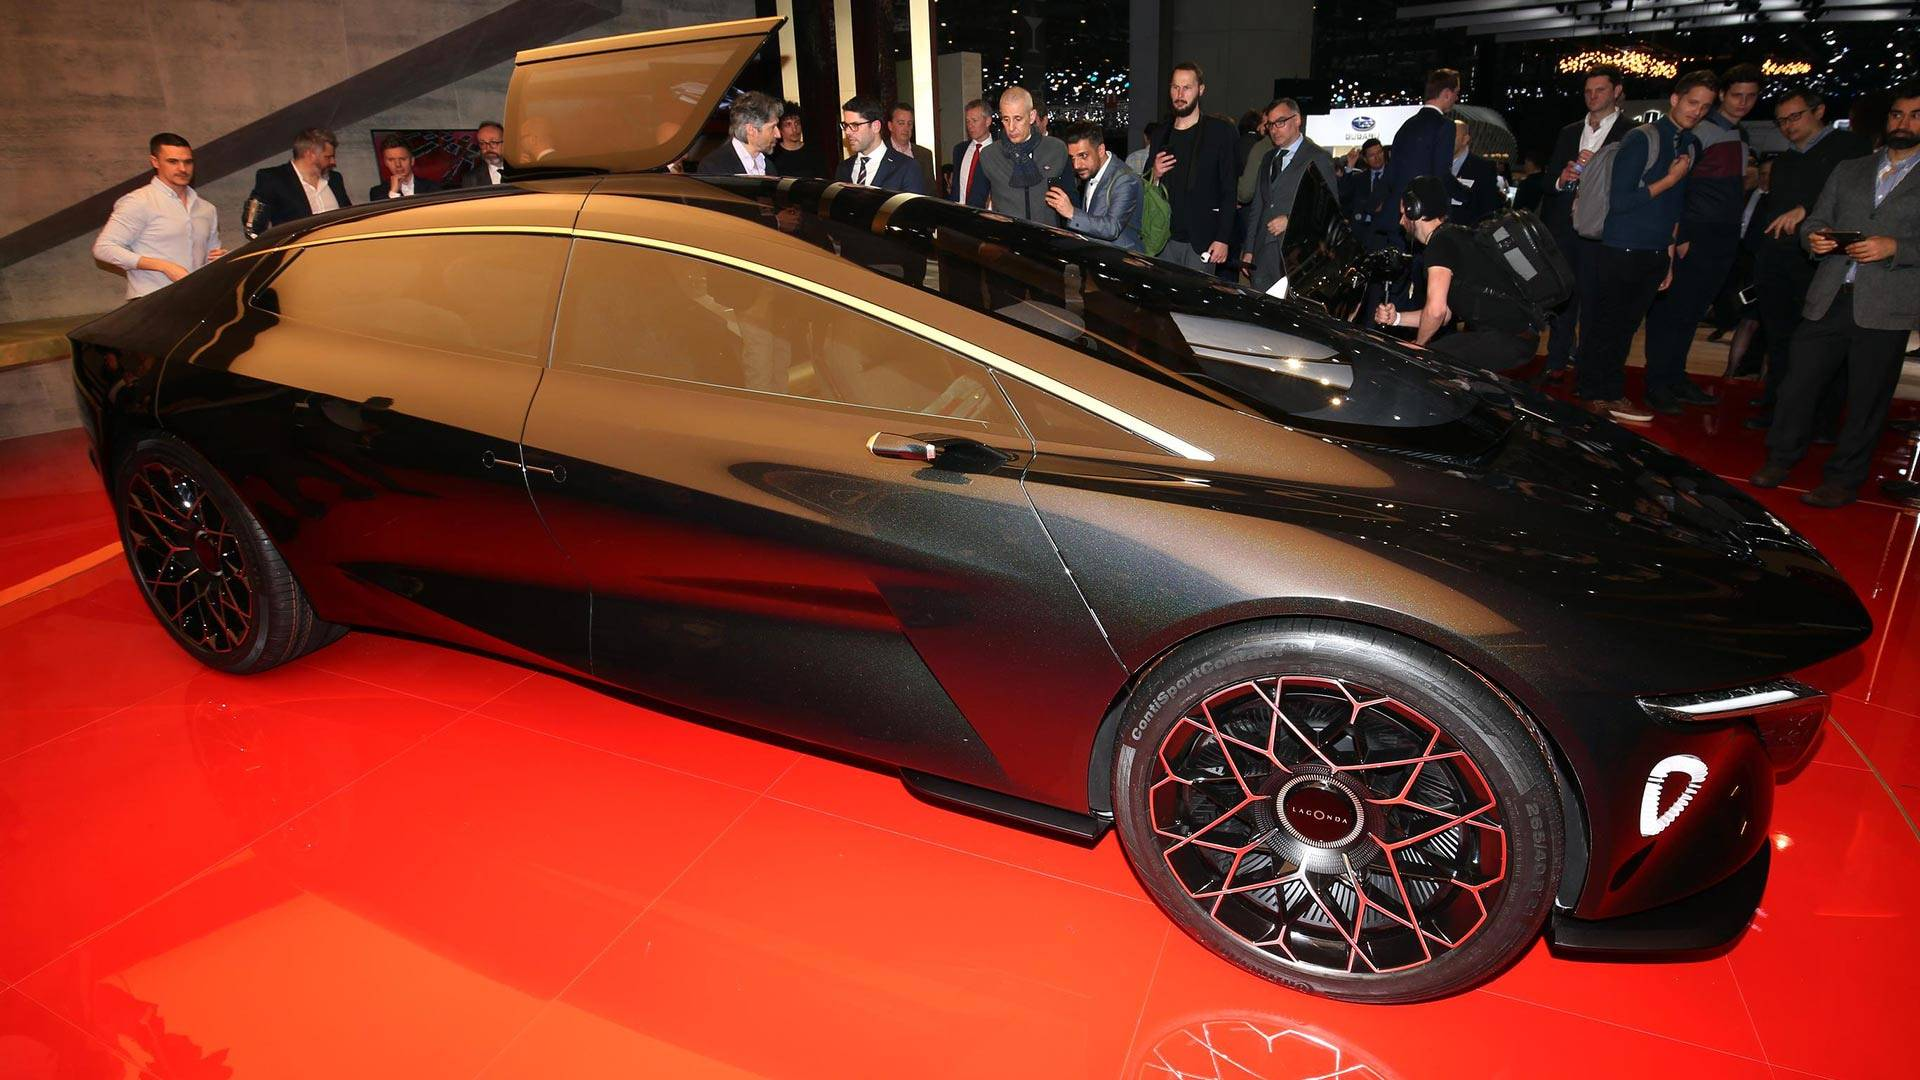 he vehicle looks like a paragon of design and should give you an idea of what all Aston Martin cars will look like in the 2020s